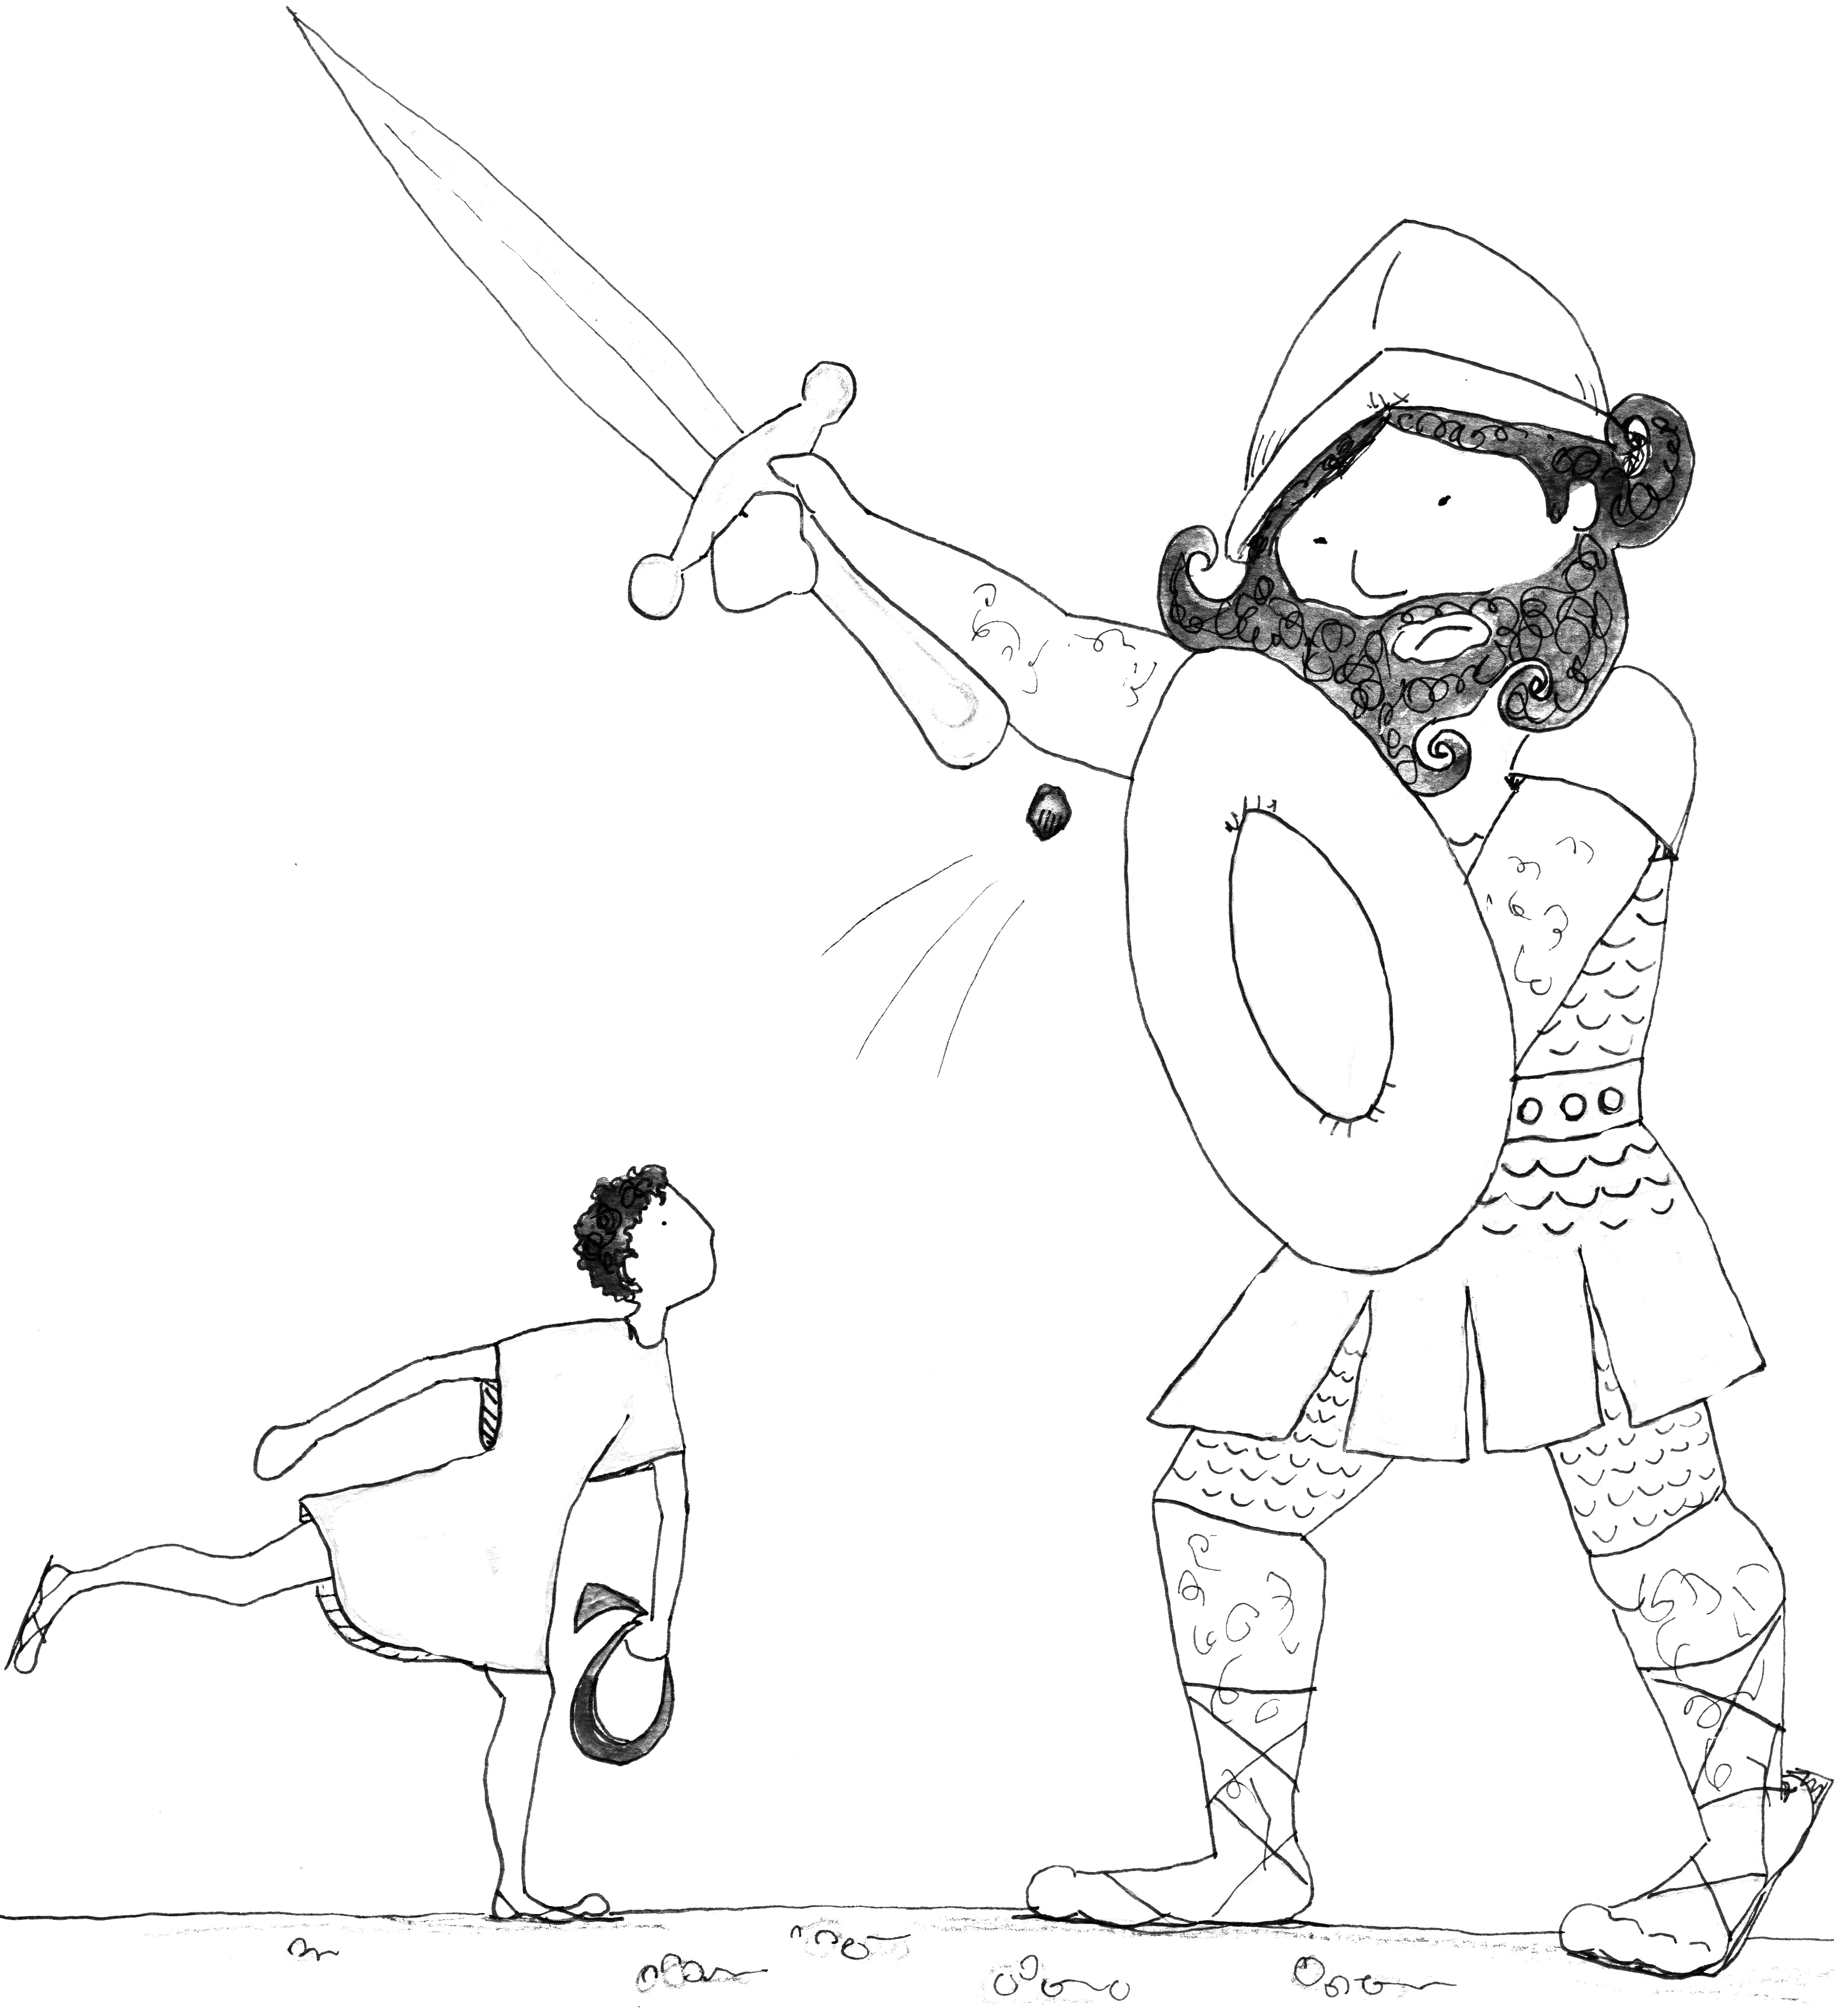 Goliath Drawing at GetDrawings.com | Free for personal use Goliath ...